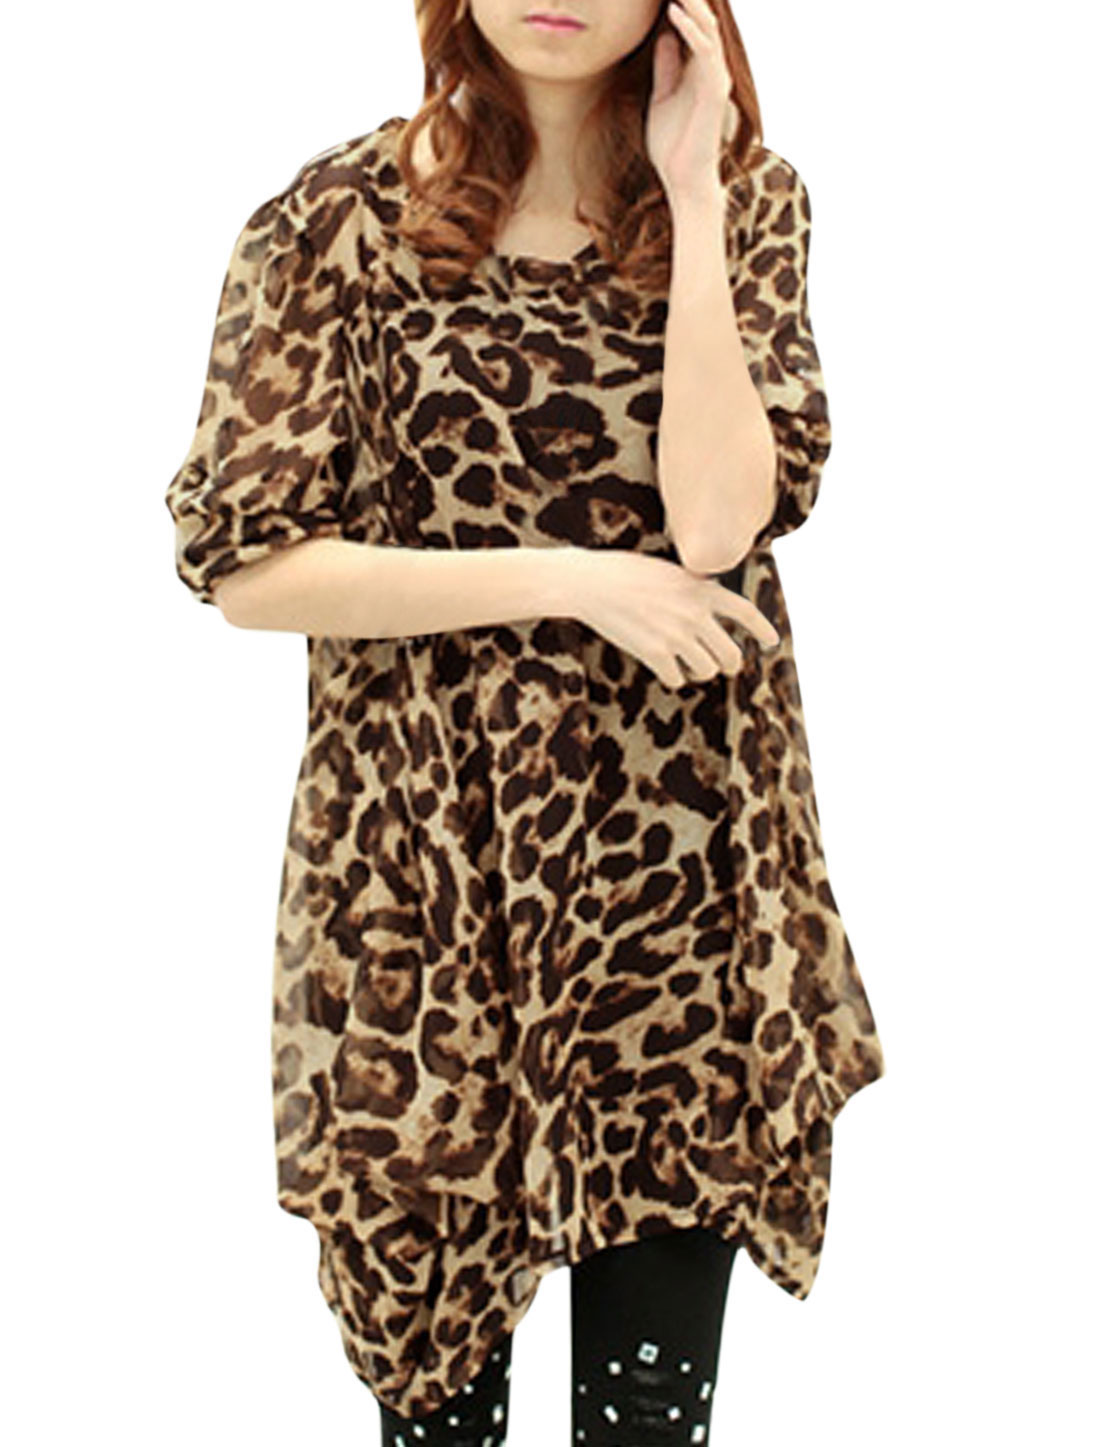 Women Leopard Pattern Asymmetric Hem See Through Unlined Tunic Top Chocolate S